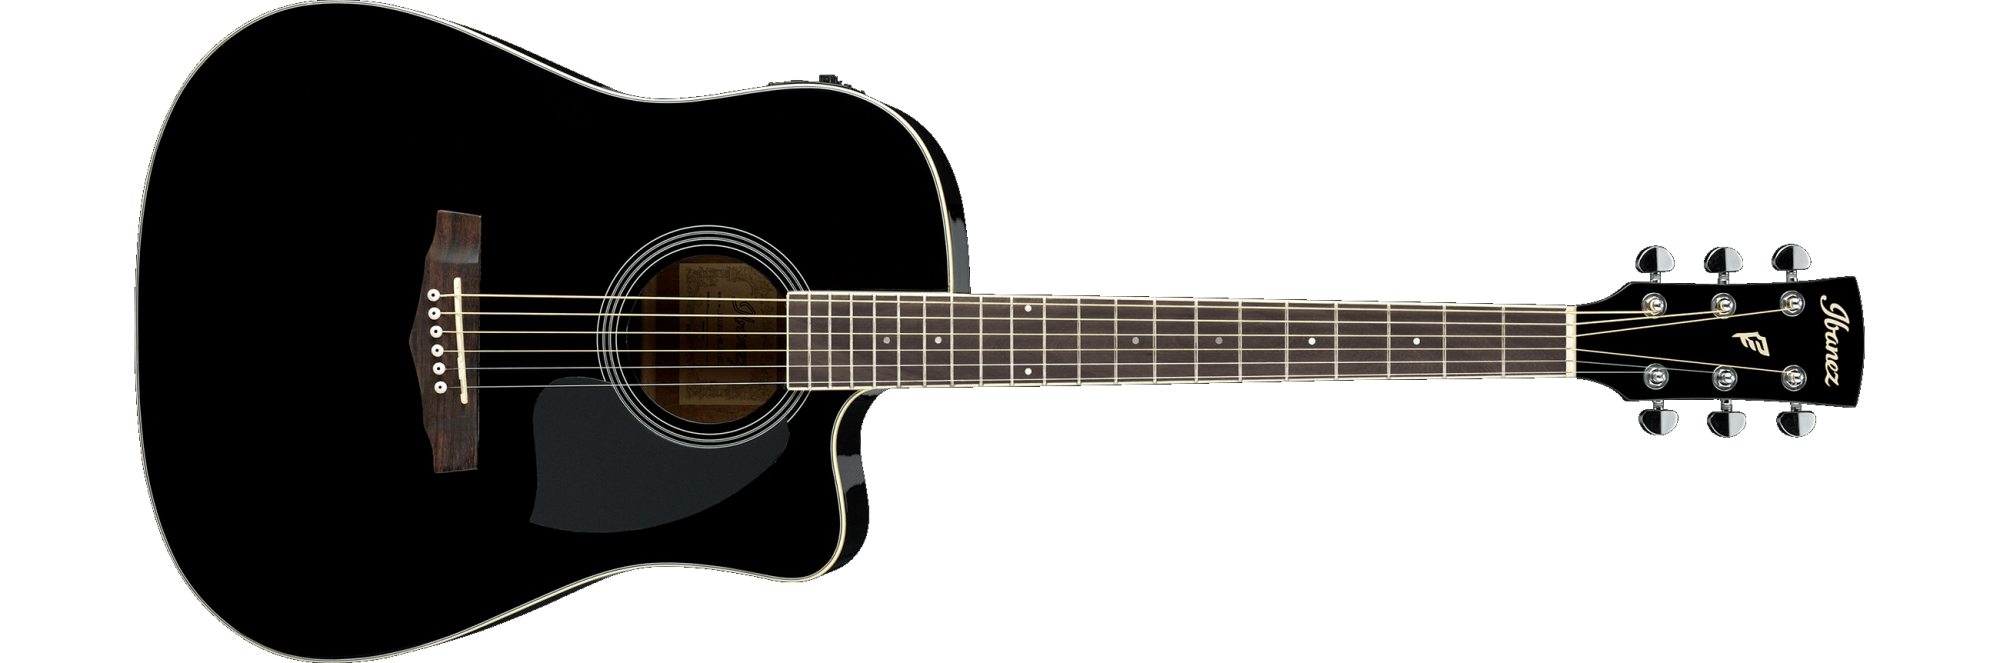 Ibanez PF15ECEBK PF SERIES Acoustic-Electric Guitar